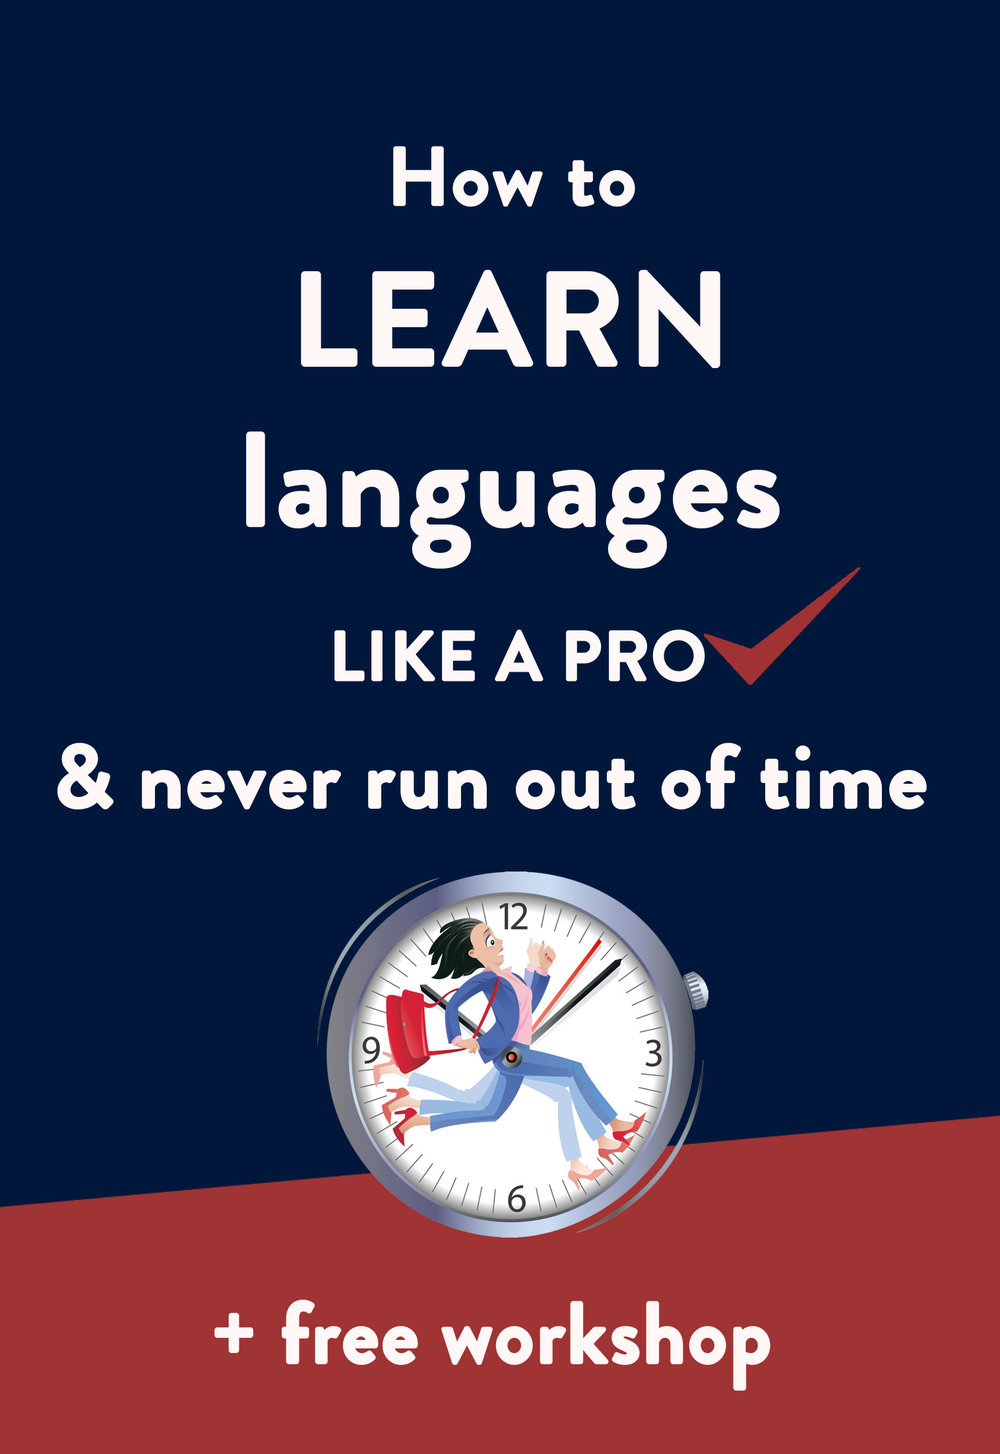 Find time to learn languages